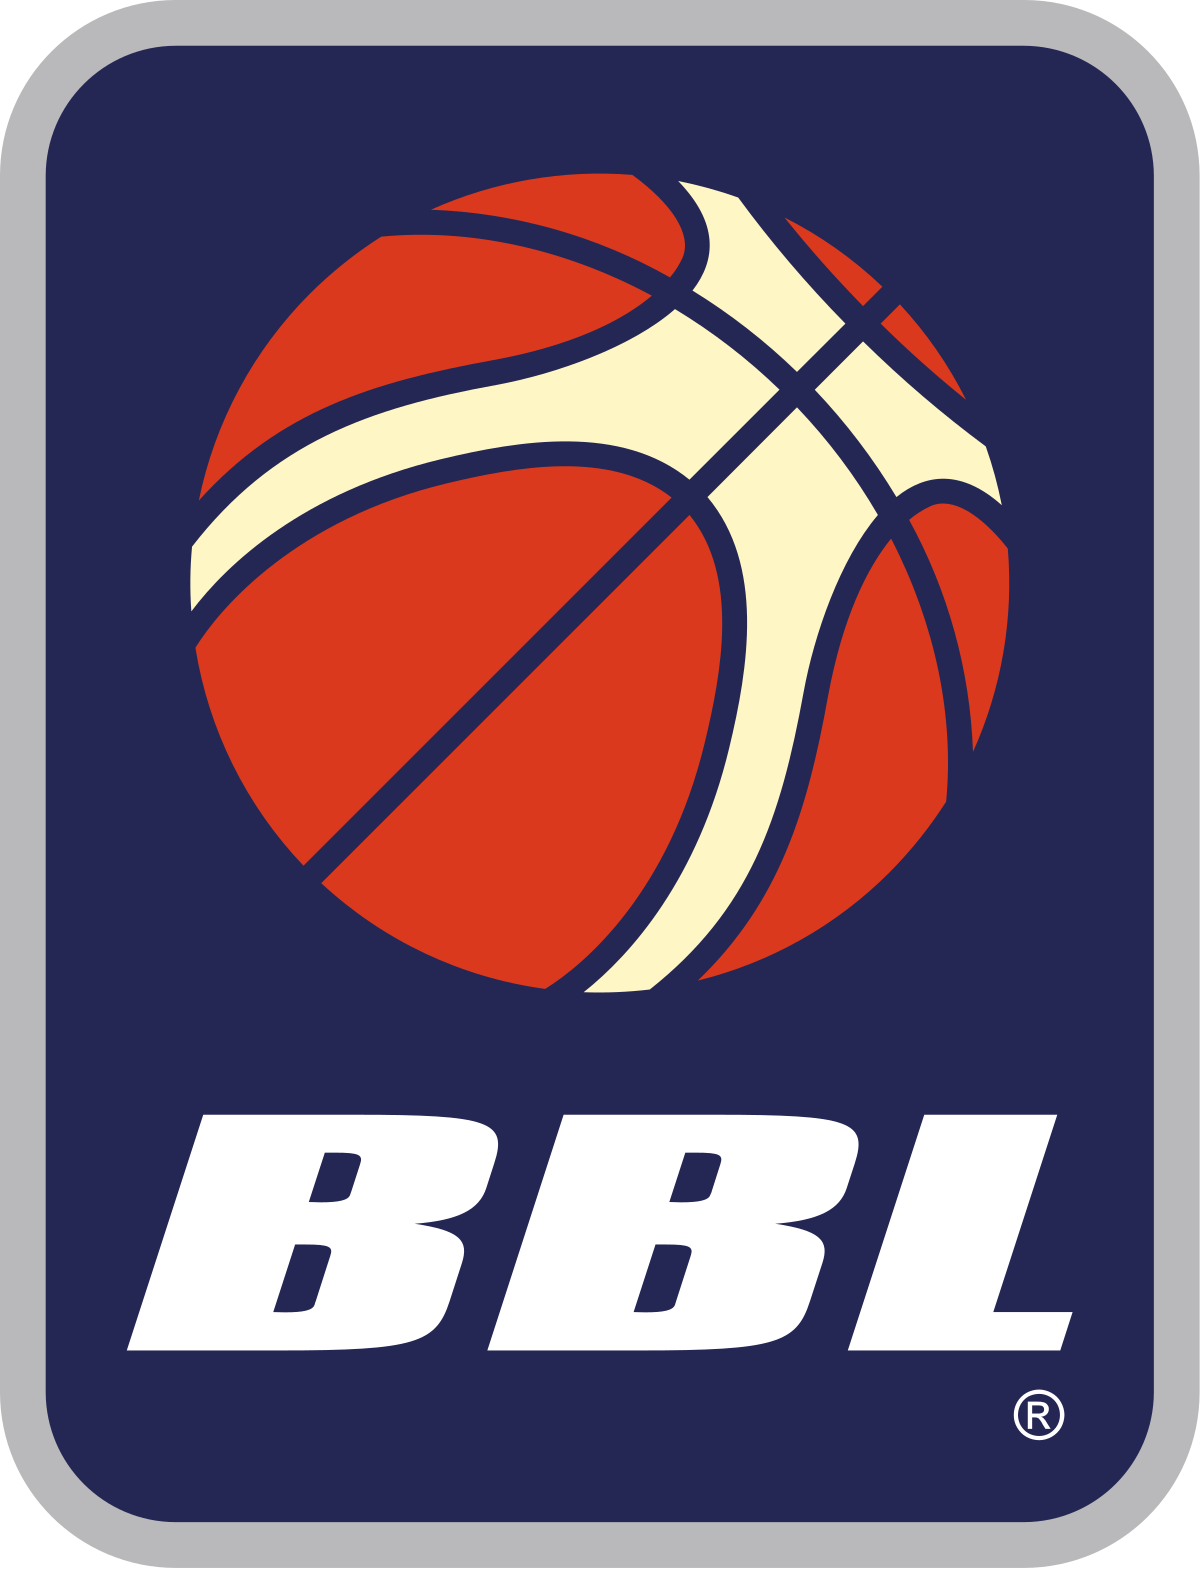 Credit: British Basketball League